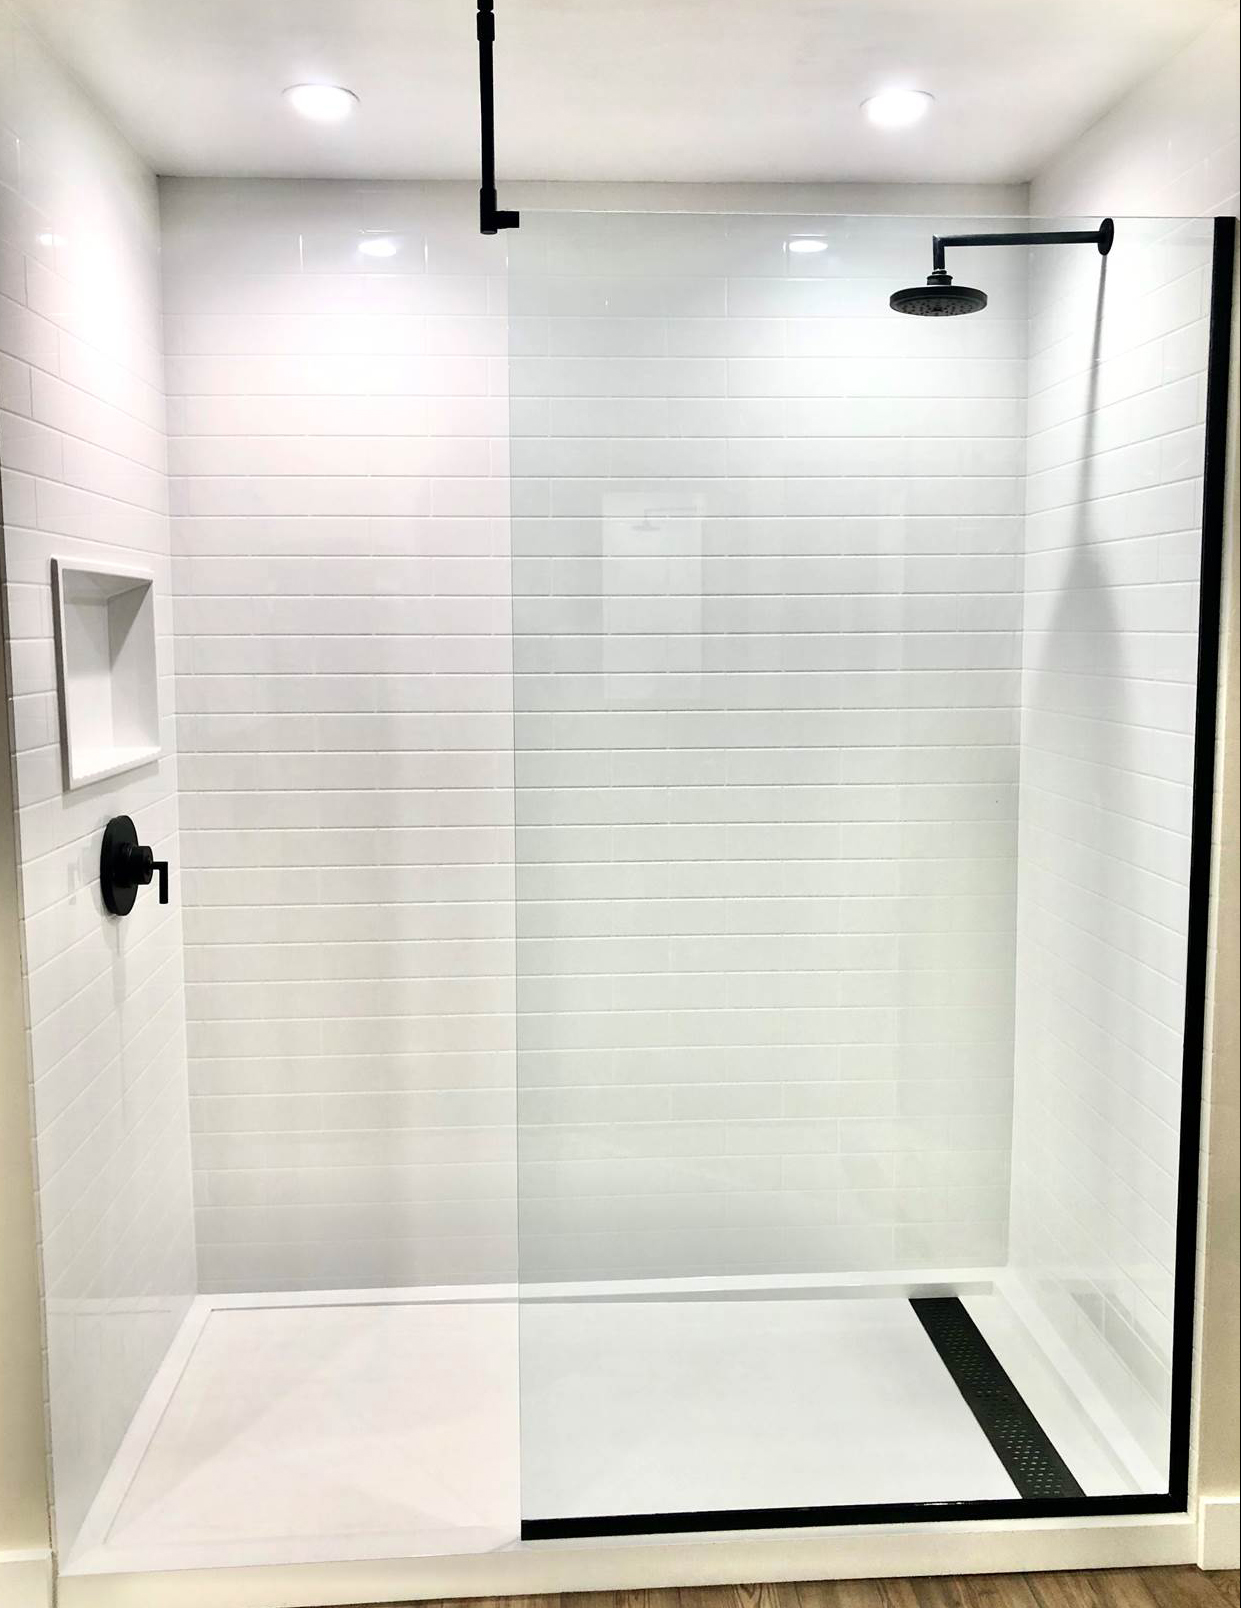 decorative glass block borders for a shower wall or windows.htm wall panels  wall panels